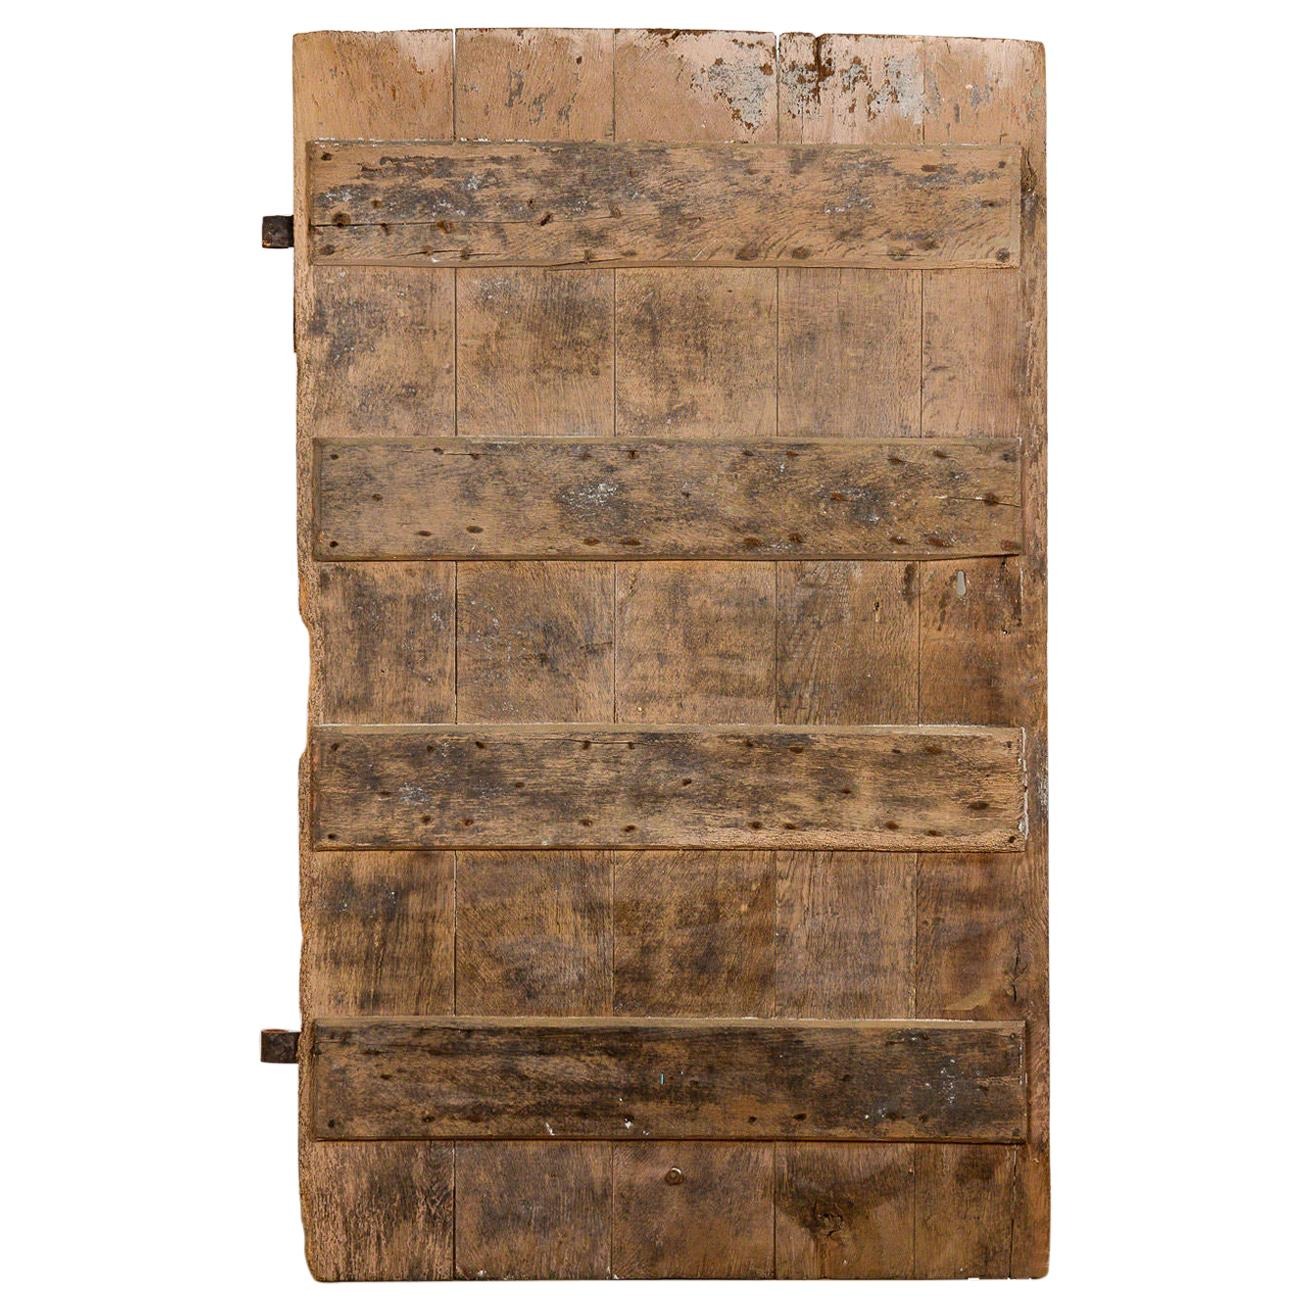 Antique Salvaged Oak Door with Iron Hinges, 20th Century